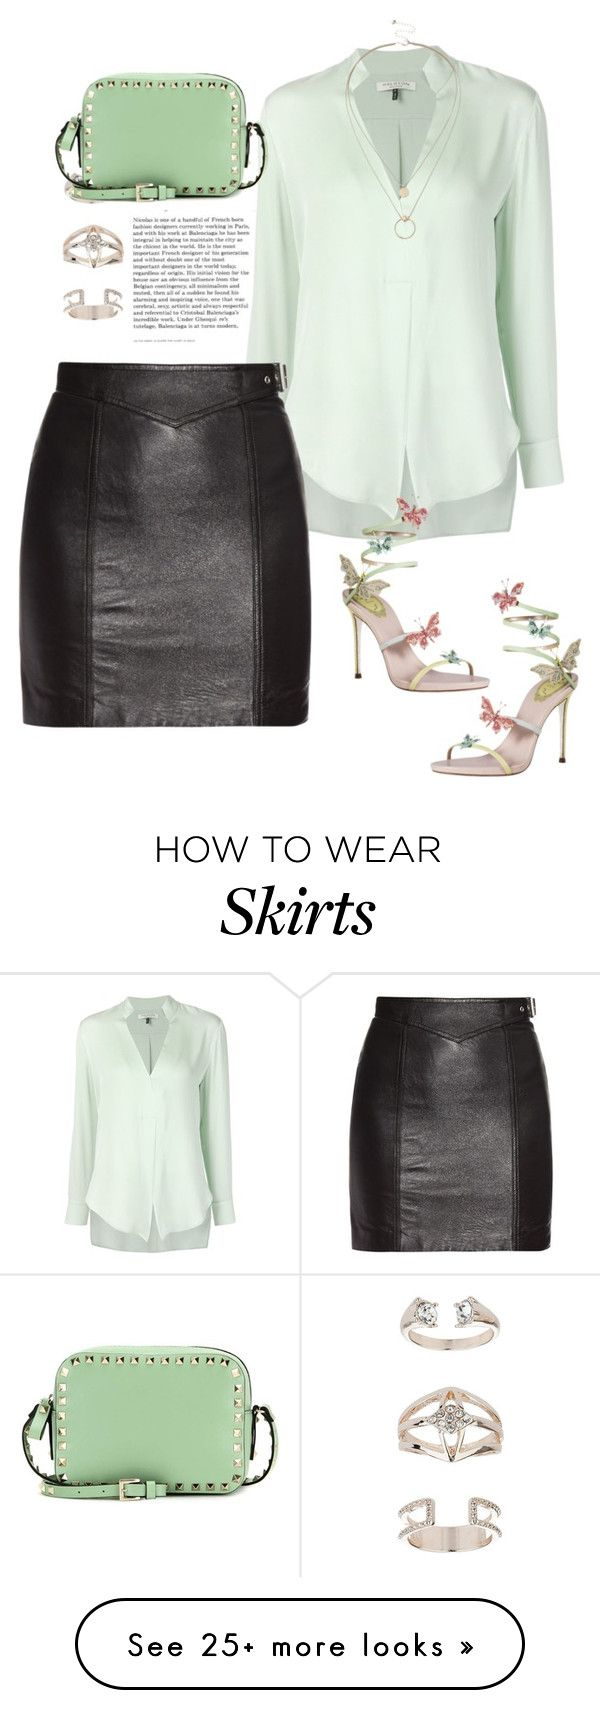 """Untitled #606"" by luhmartins on Polyvore featuring Halston Heritage, Yves Saint Laurent, Topshop, Sole Society and Valentino"